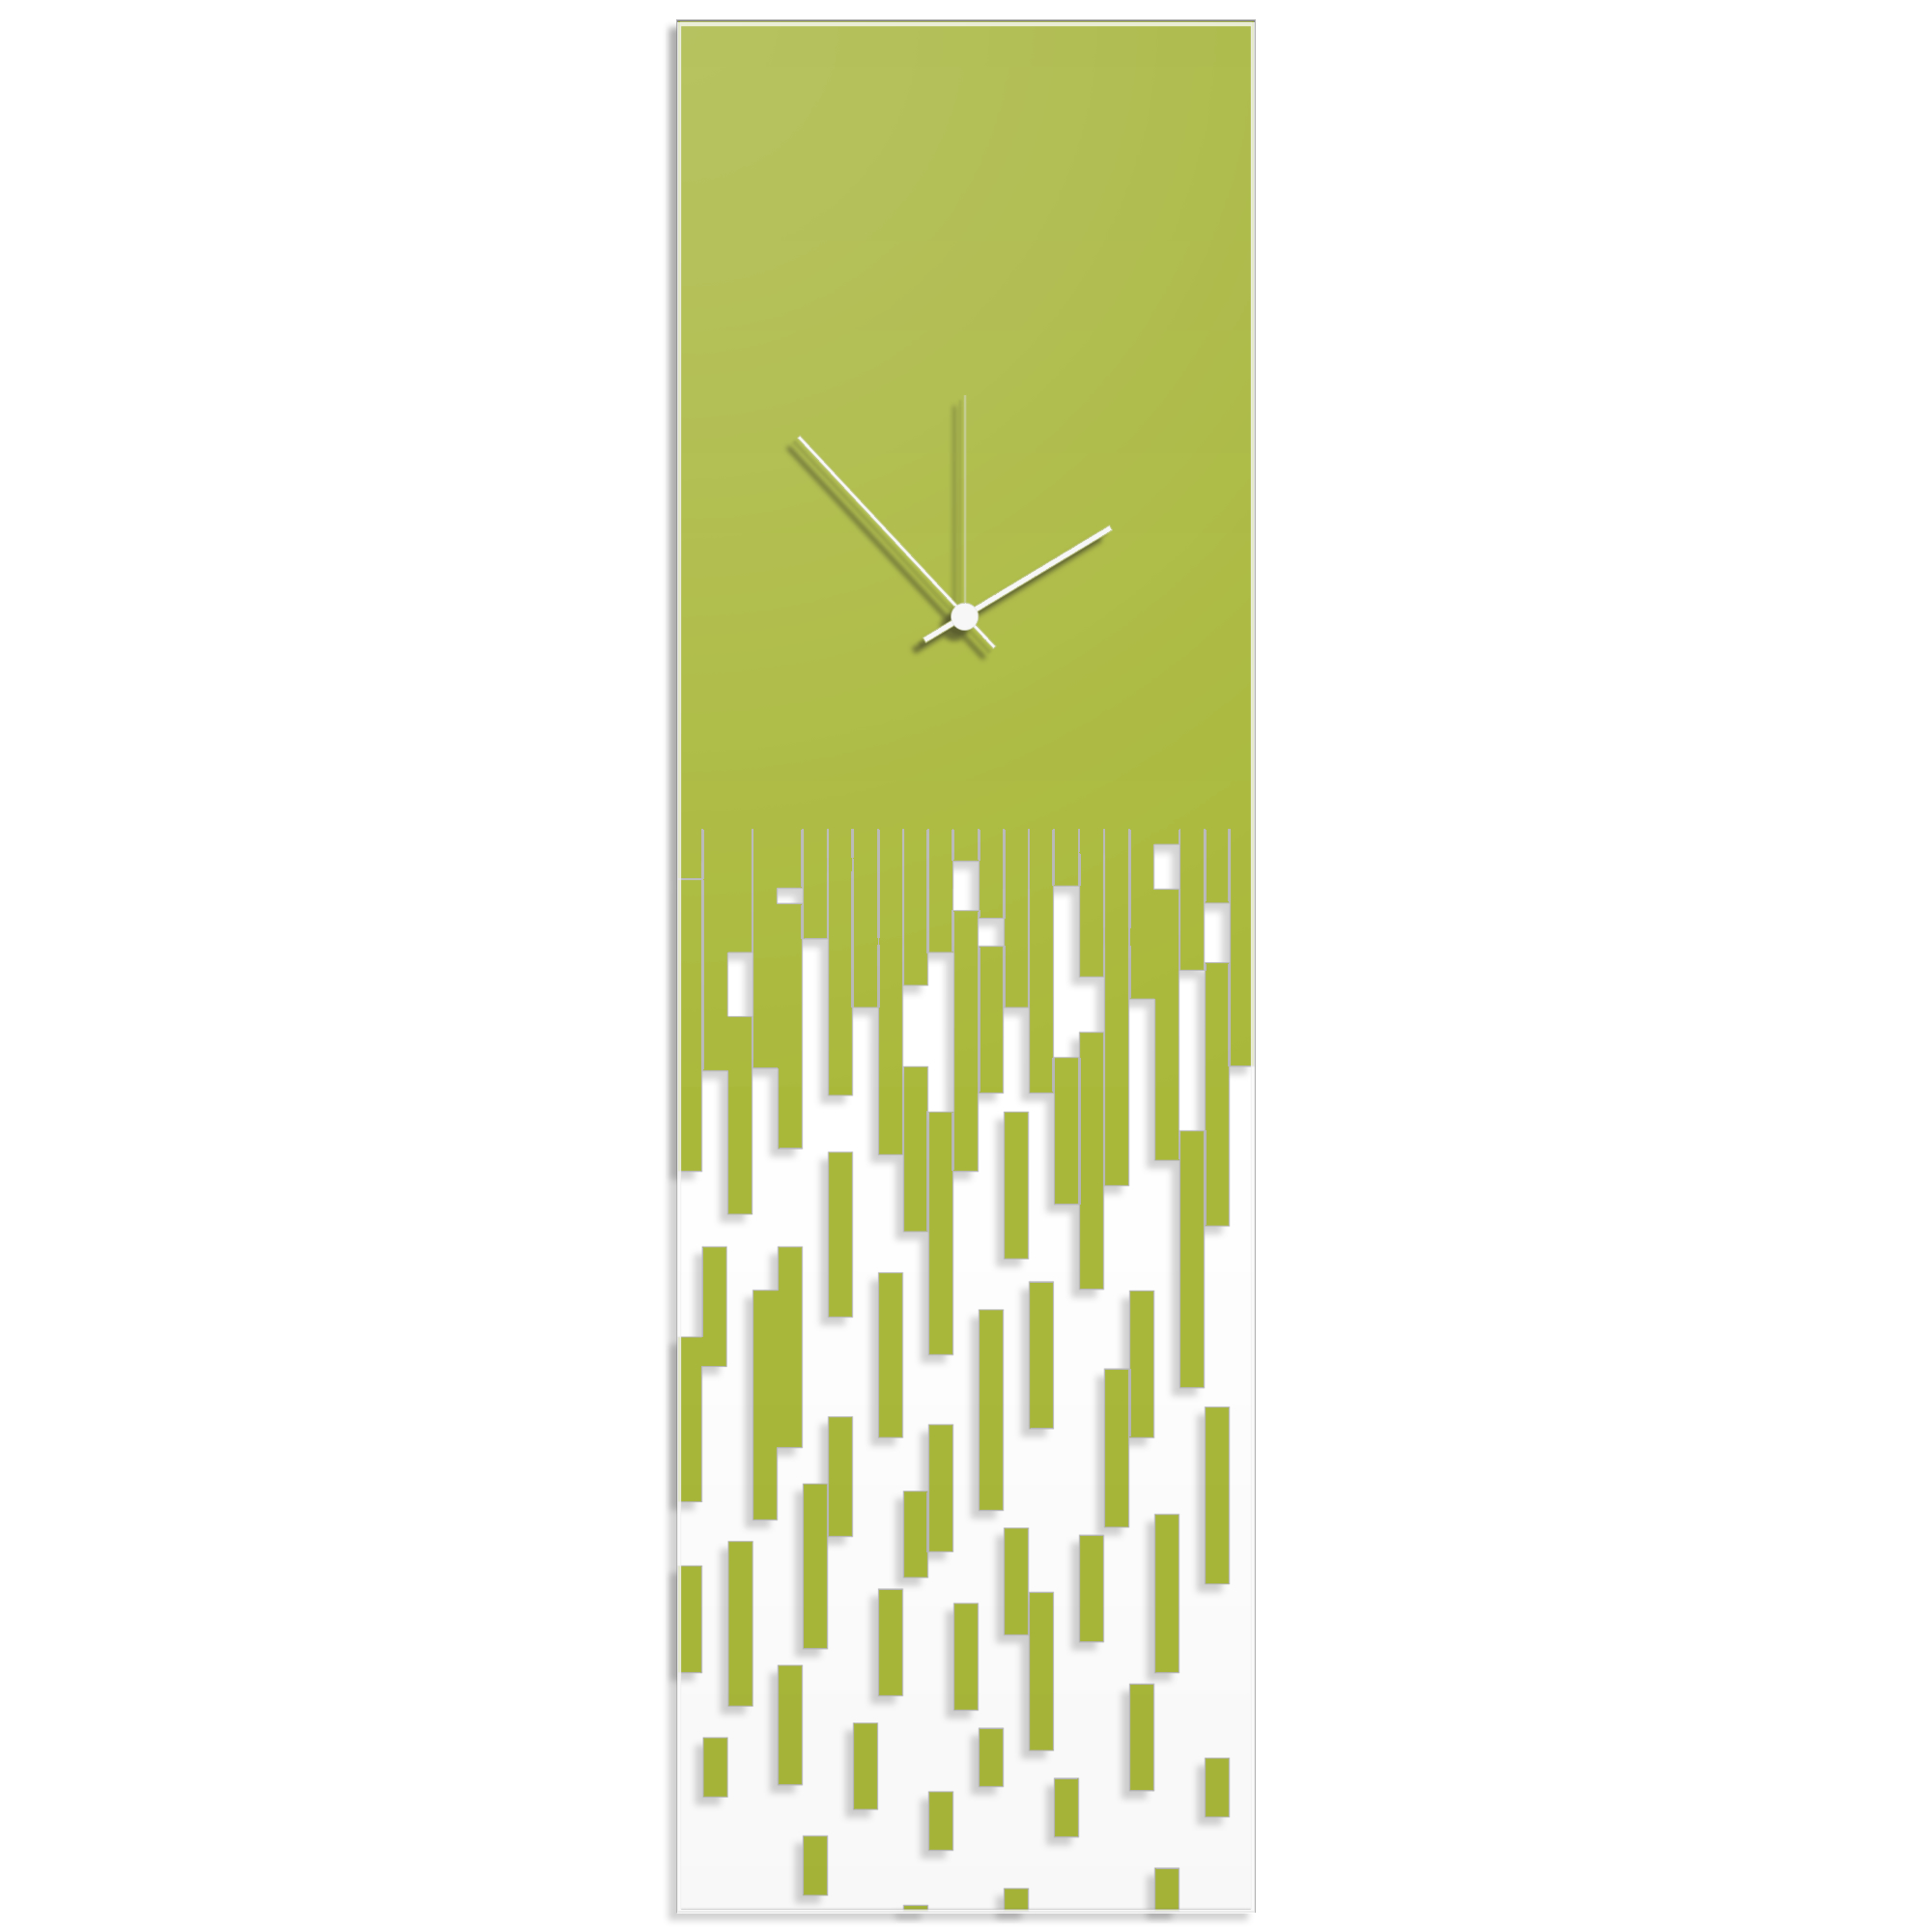 Metal Art Studio - Green Pixelated Clock by Adam Schwoeppe - Surreal ...